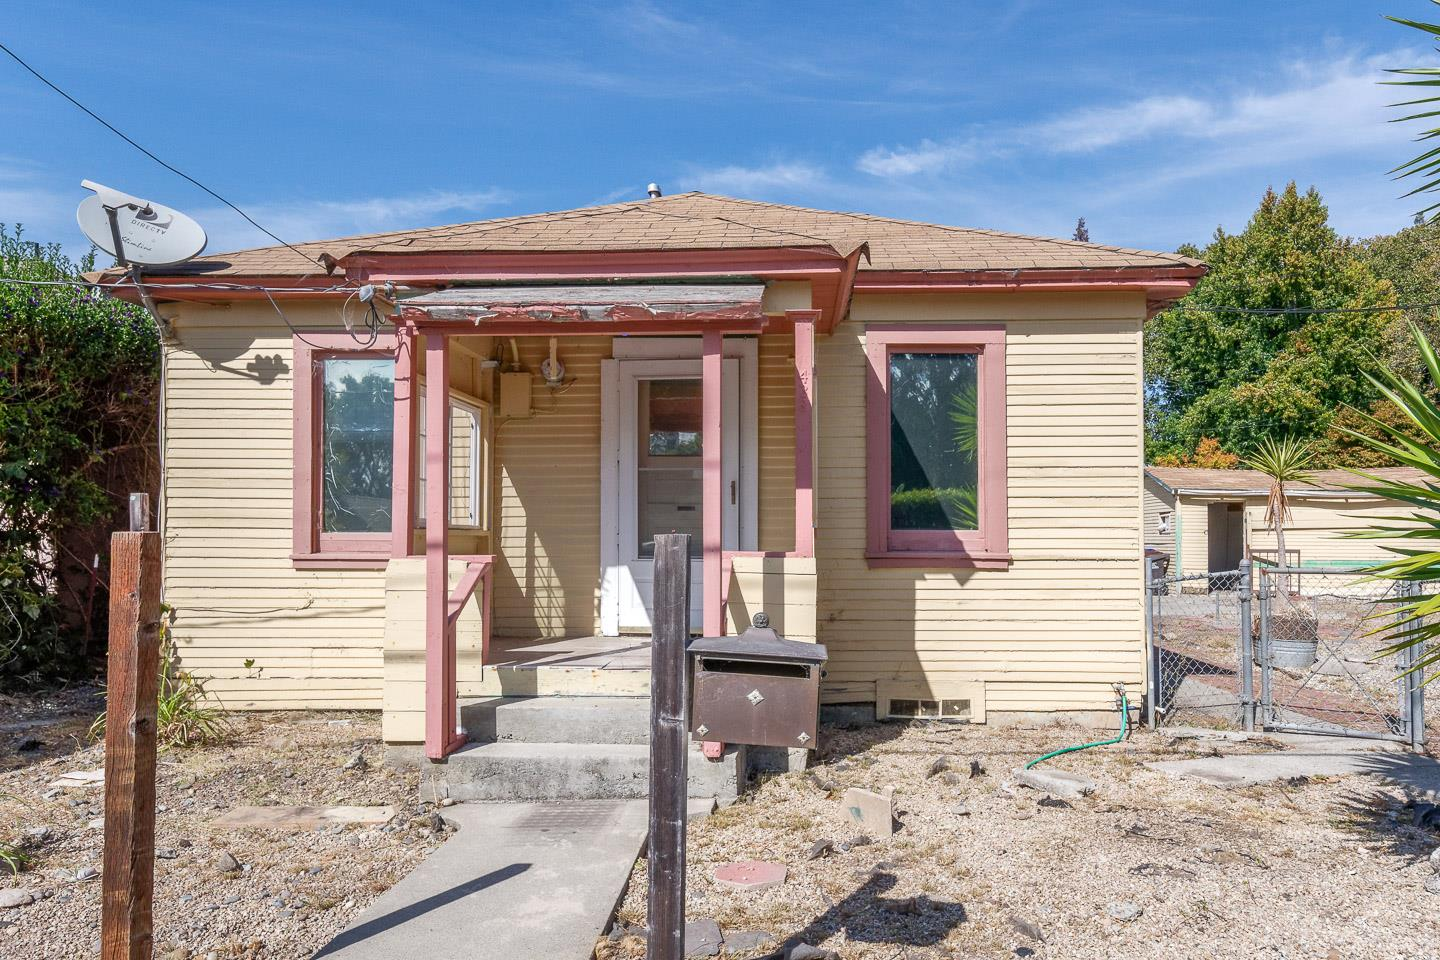 This property has deferred maintenance and will require significant renovation. Home is situated on a corner lot and has a detached single car garage. This is a Probate Sale subject to court confirmation and possible overbid.